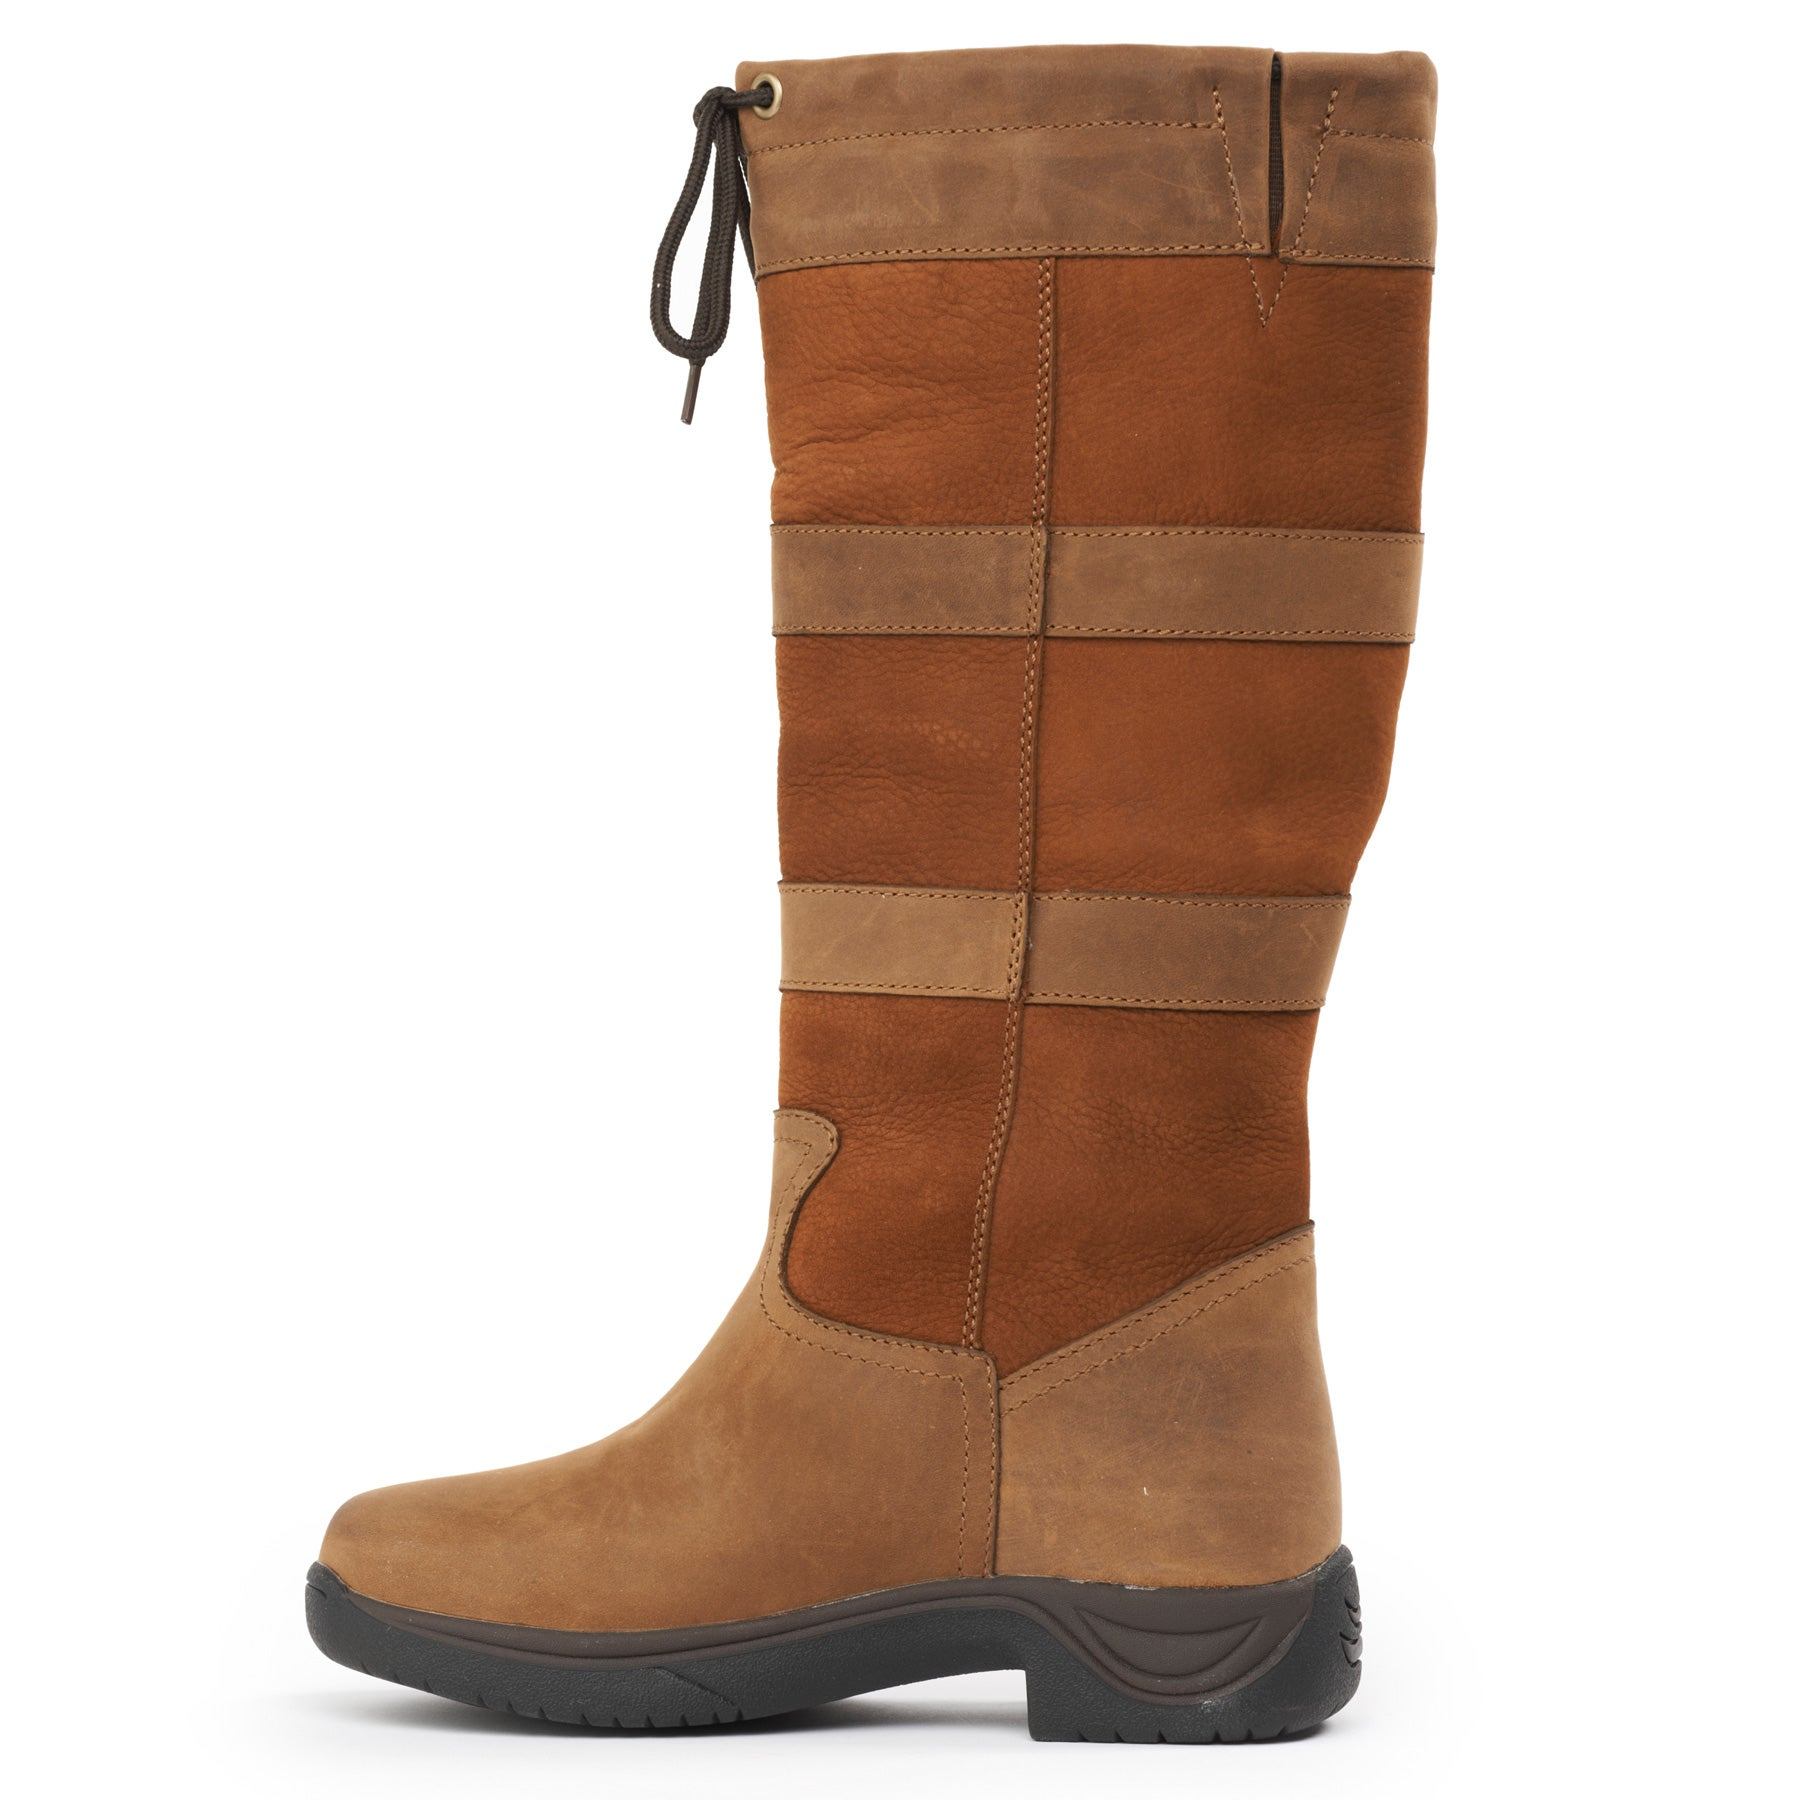 d04610becd0 Dublin River III Women's Tall Boots-Tan - Riding Warehouse